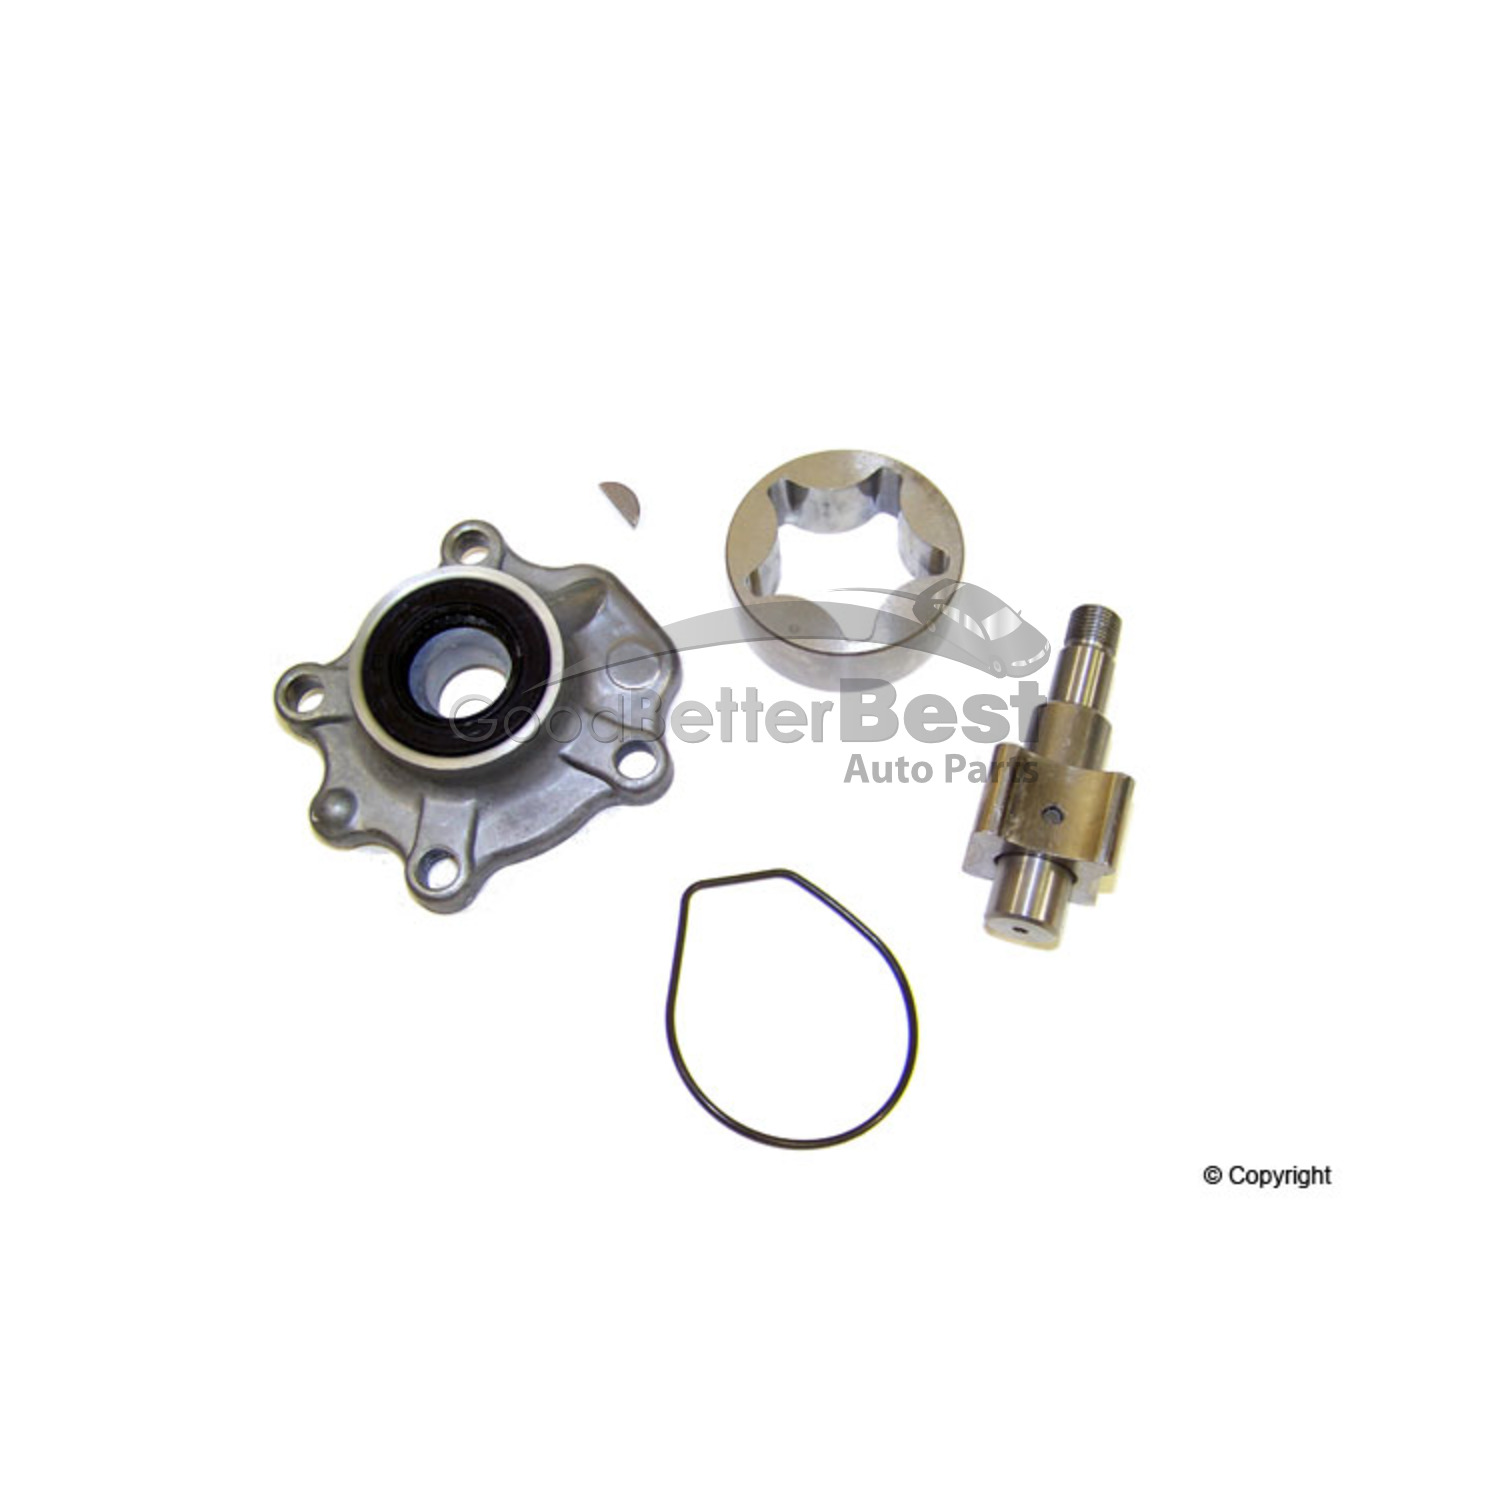 One New Rock Engine Oil Pump Op305 For Honda